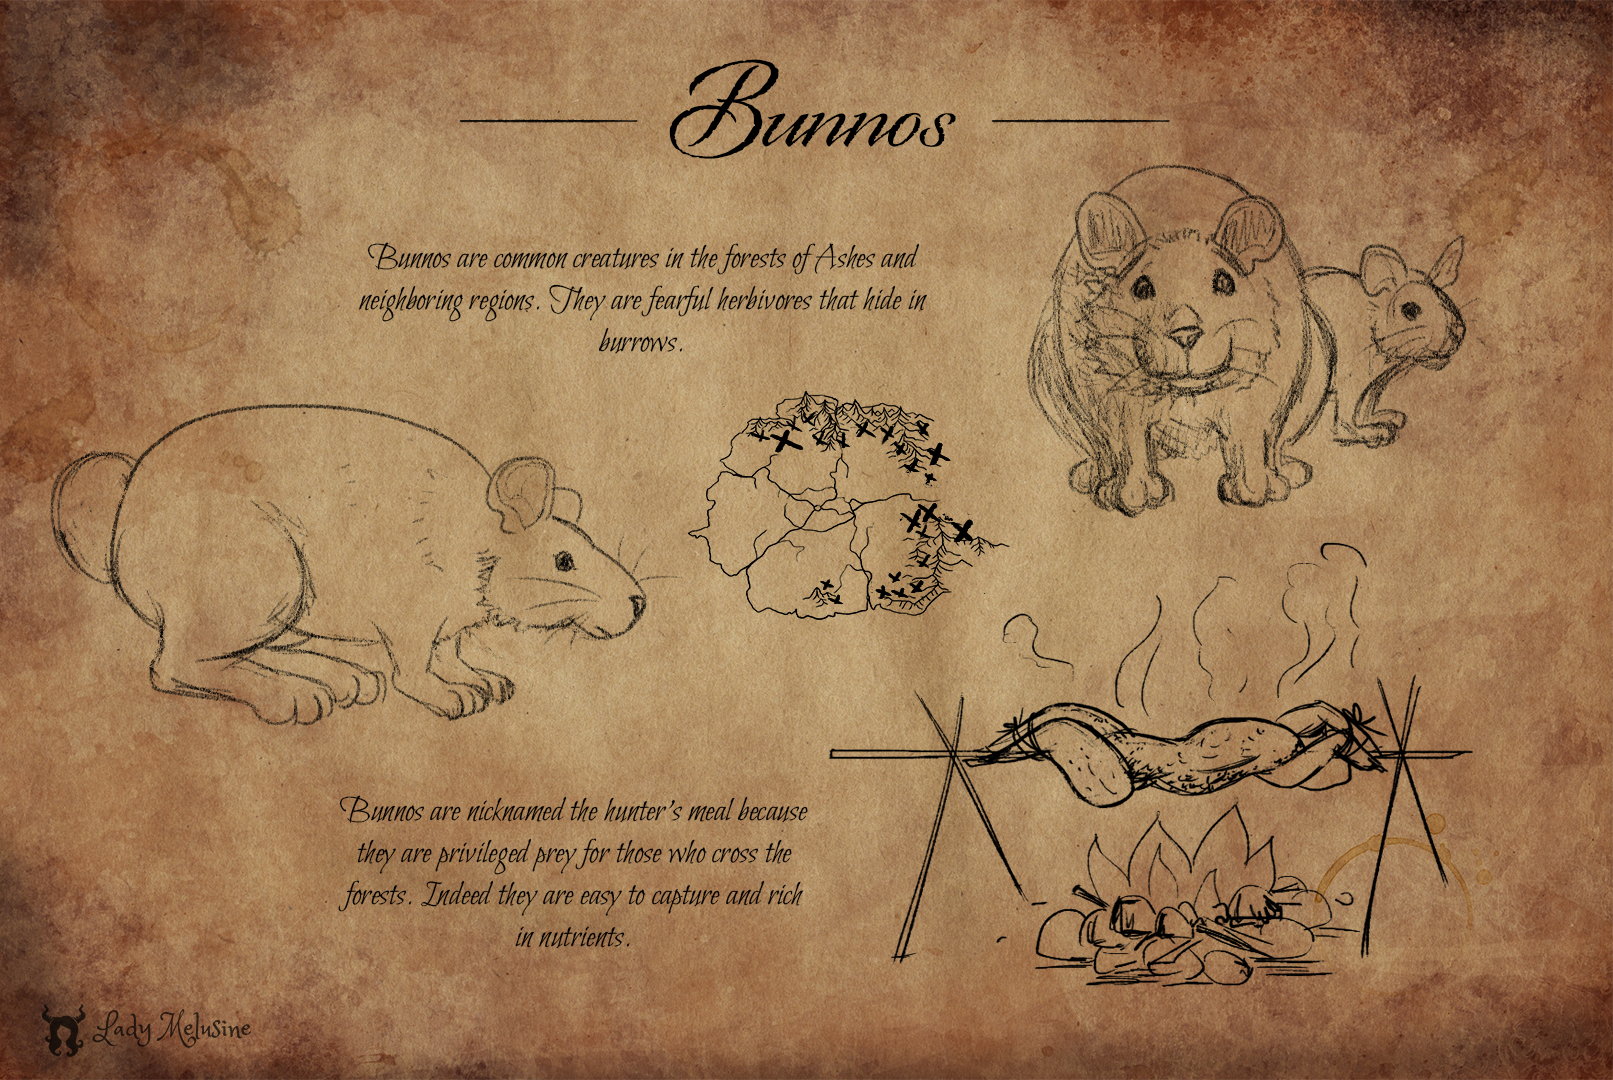 Fantastic animal sketch Bunnos Lady Melusine